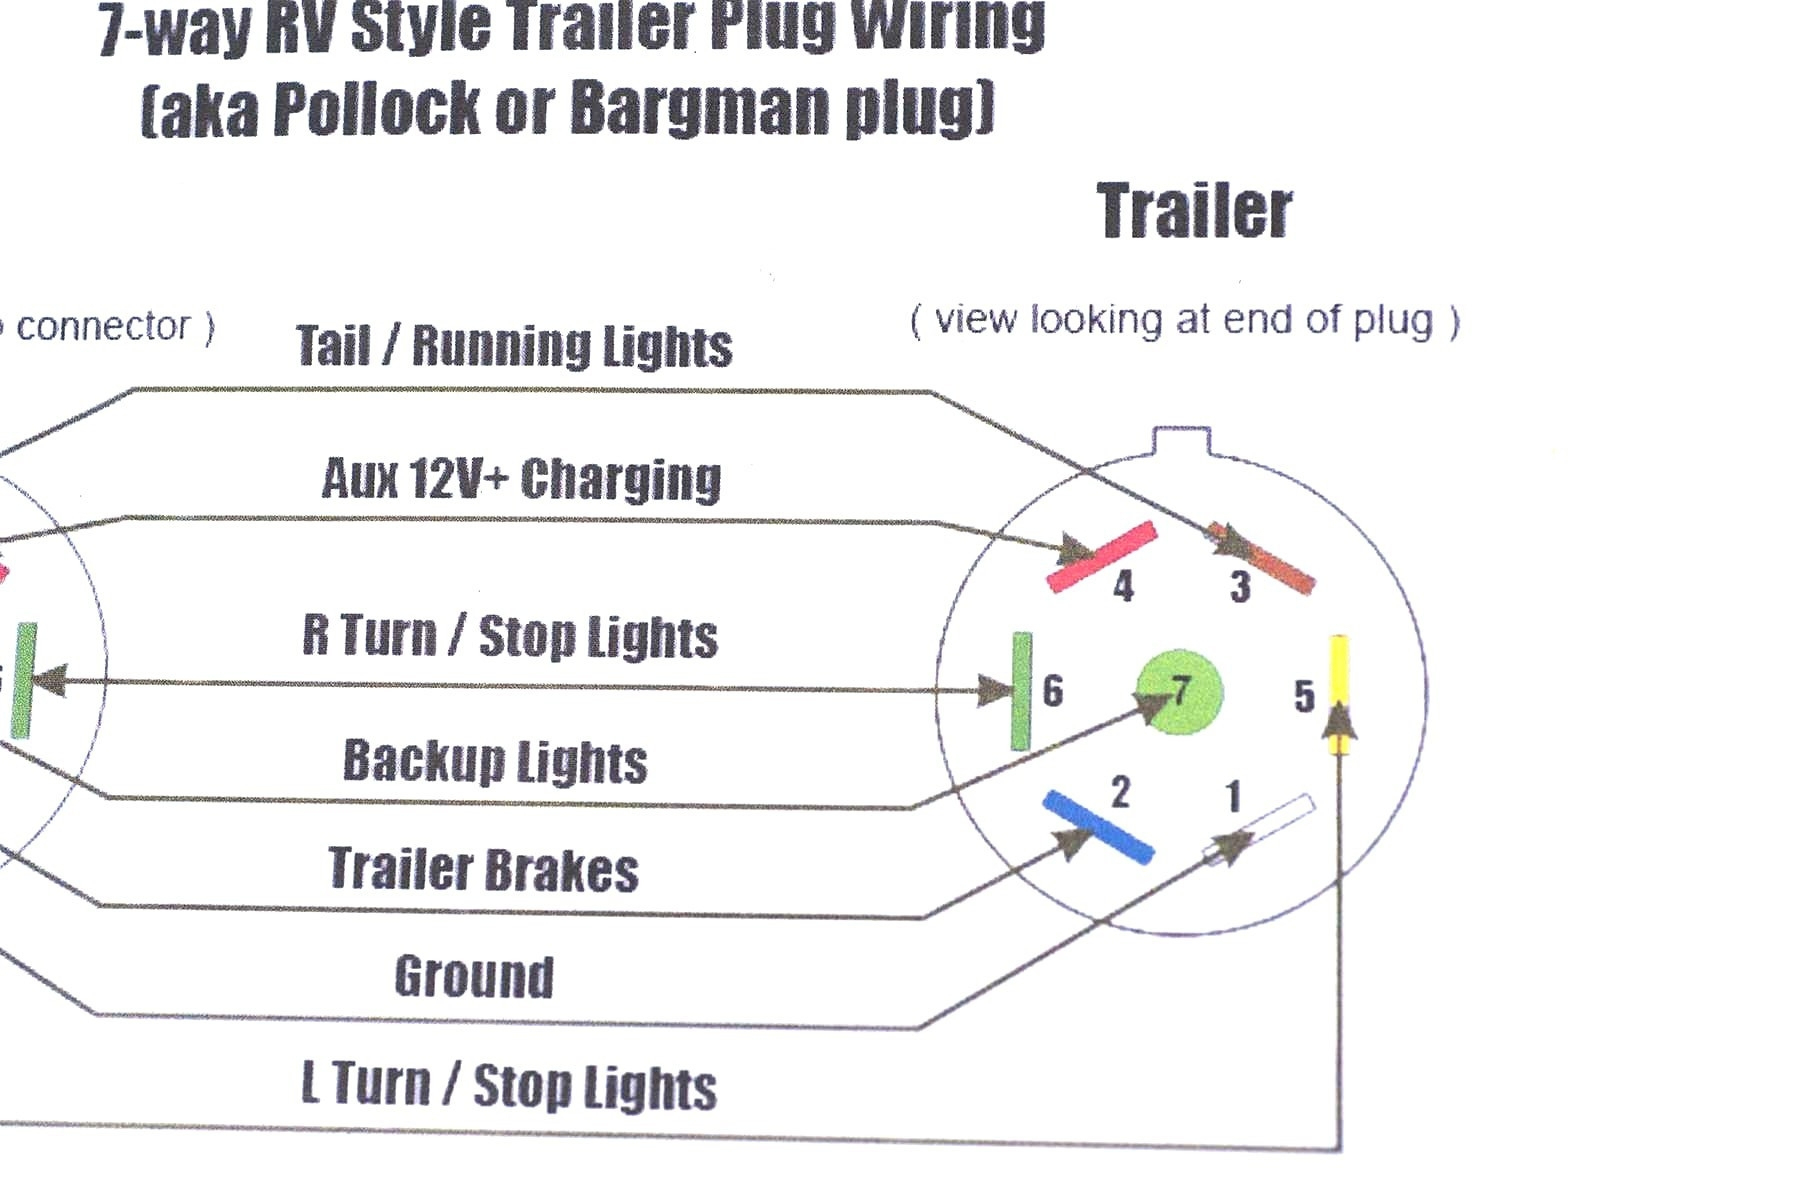 Sae Trailer Wiring Diagram - Wiring Diagram Data Oreo - Ford Trailer Wiring Diagram